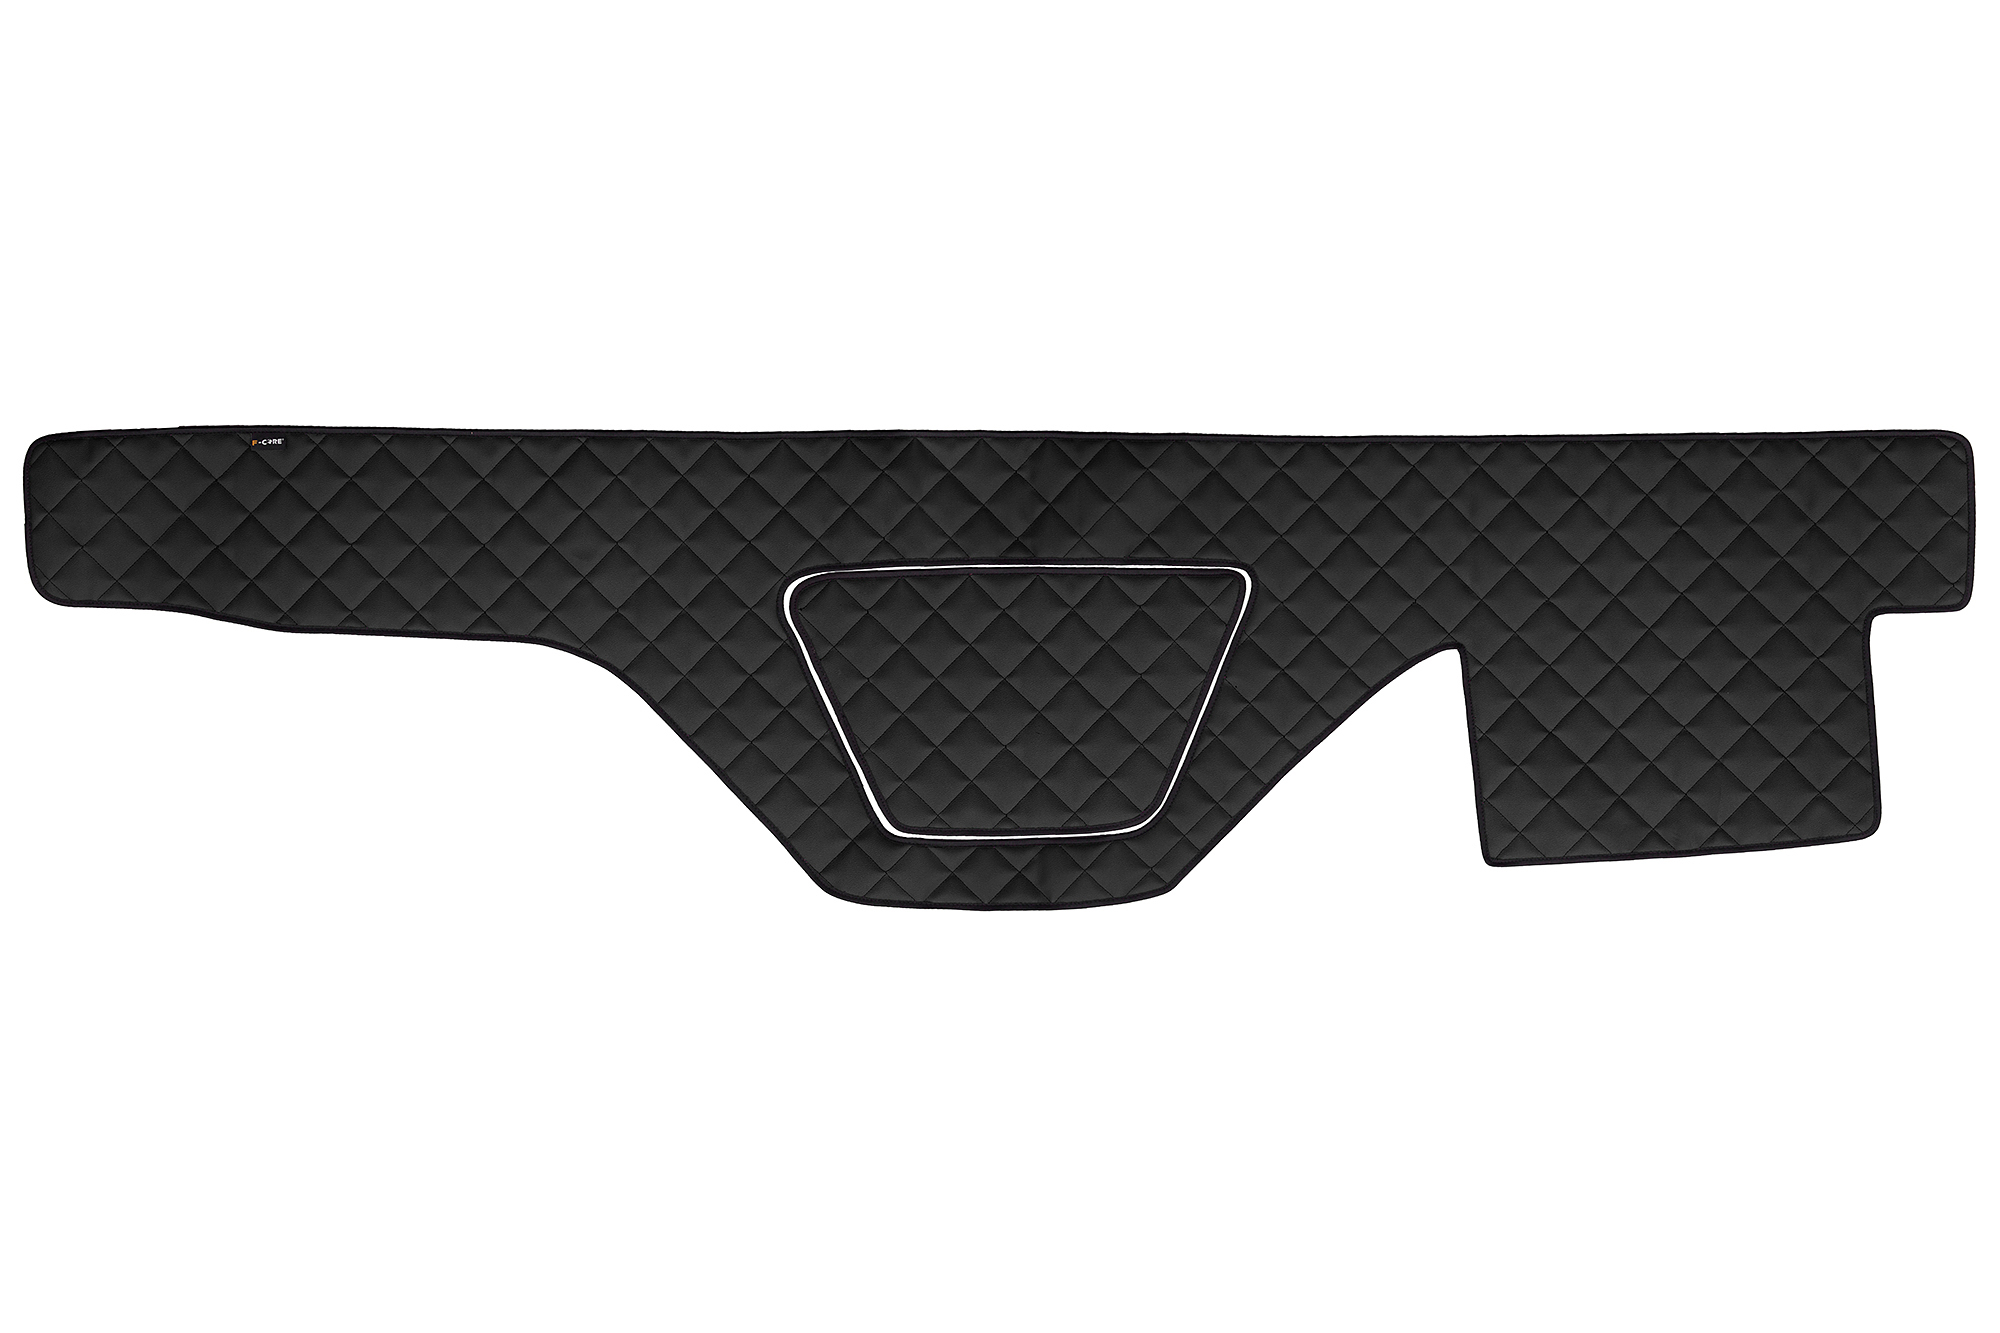 Fd02 Dashboard Cover Eco Leather Daf Xf 105 Euro 5